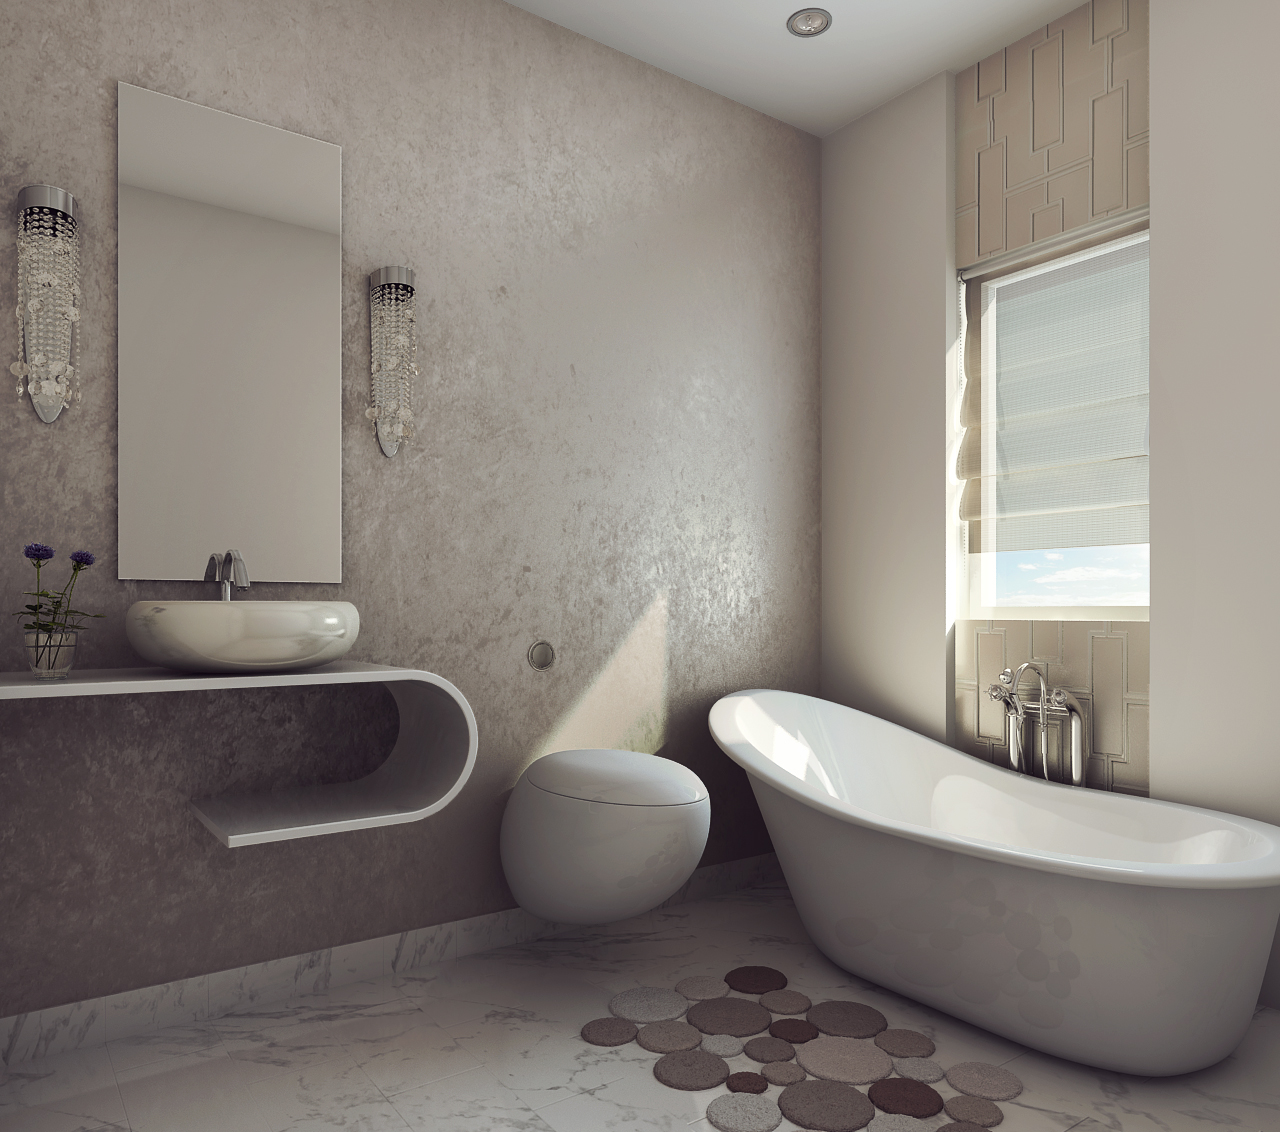 Modern earthy design bath room free 3d model max for Bathroom models images